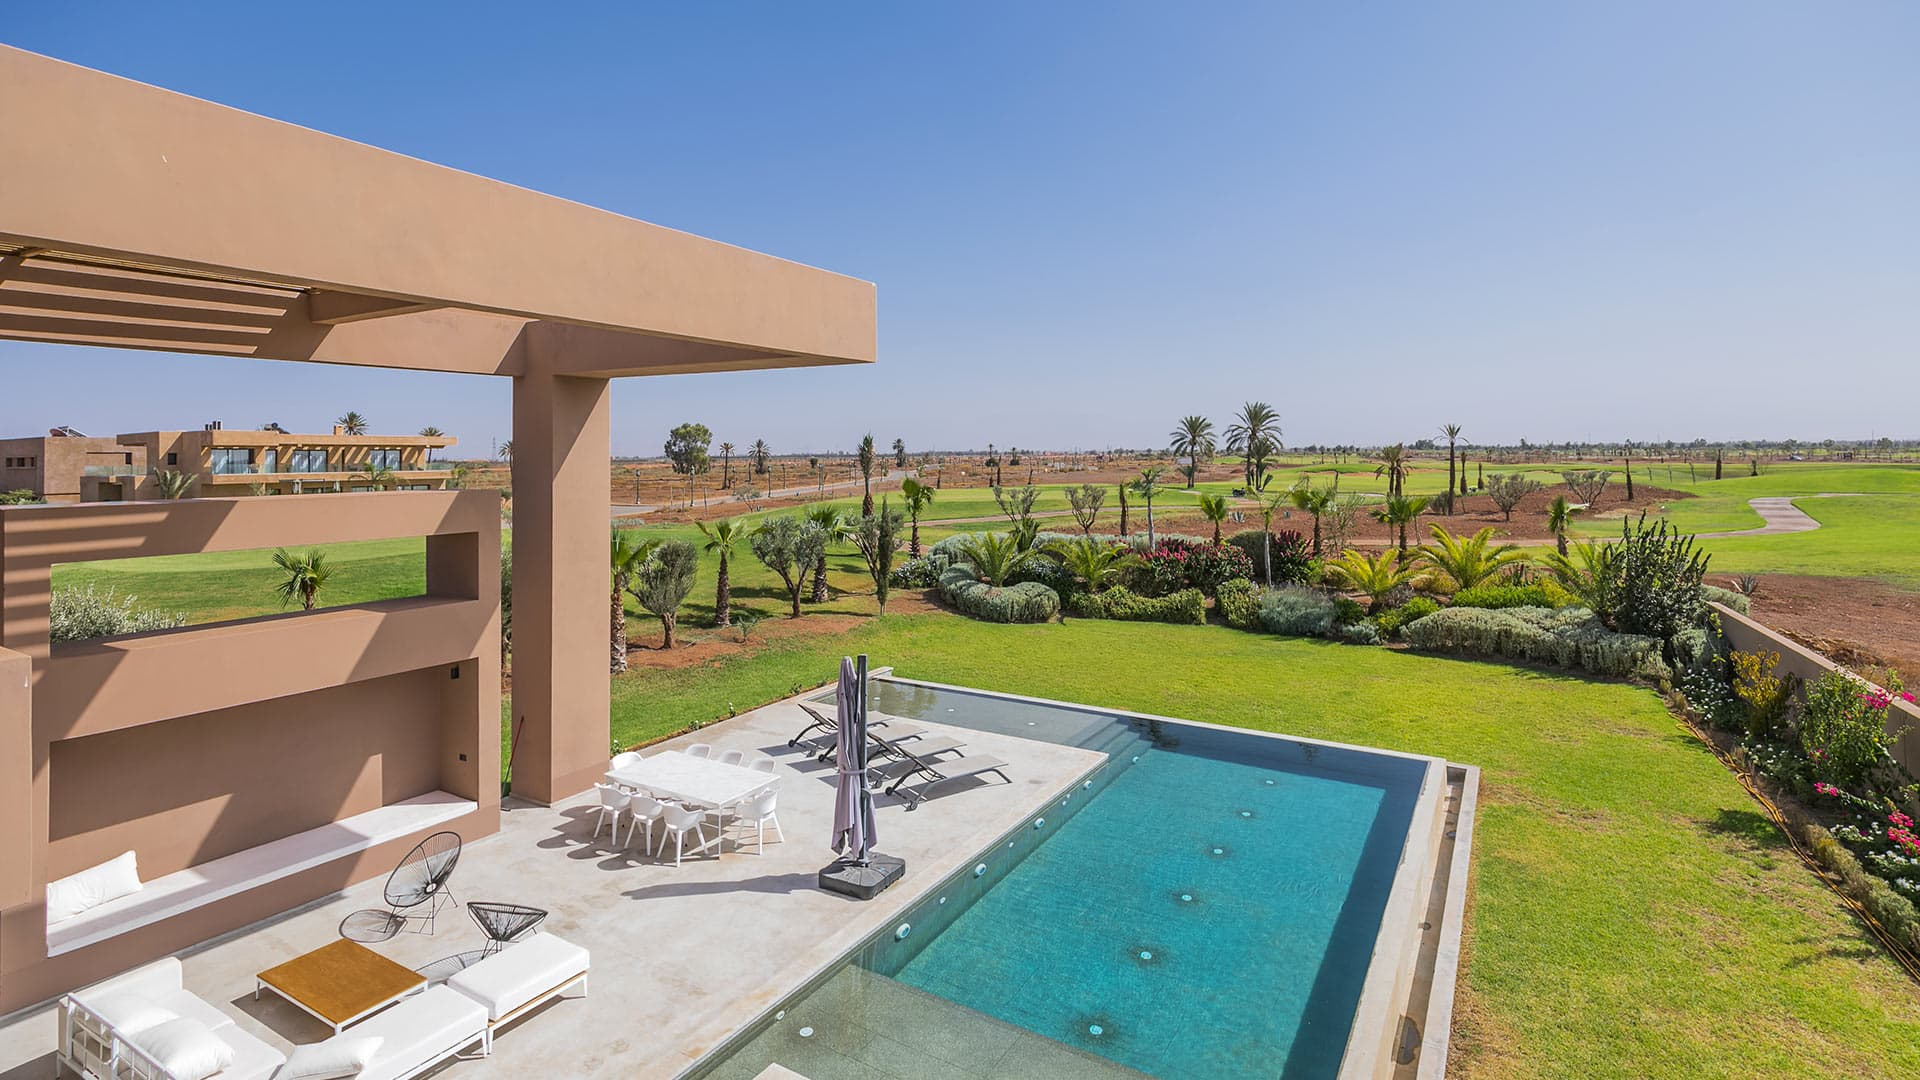 Villa Villa Melka, Rental in Marrakech